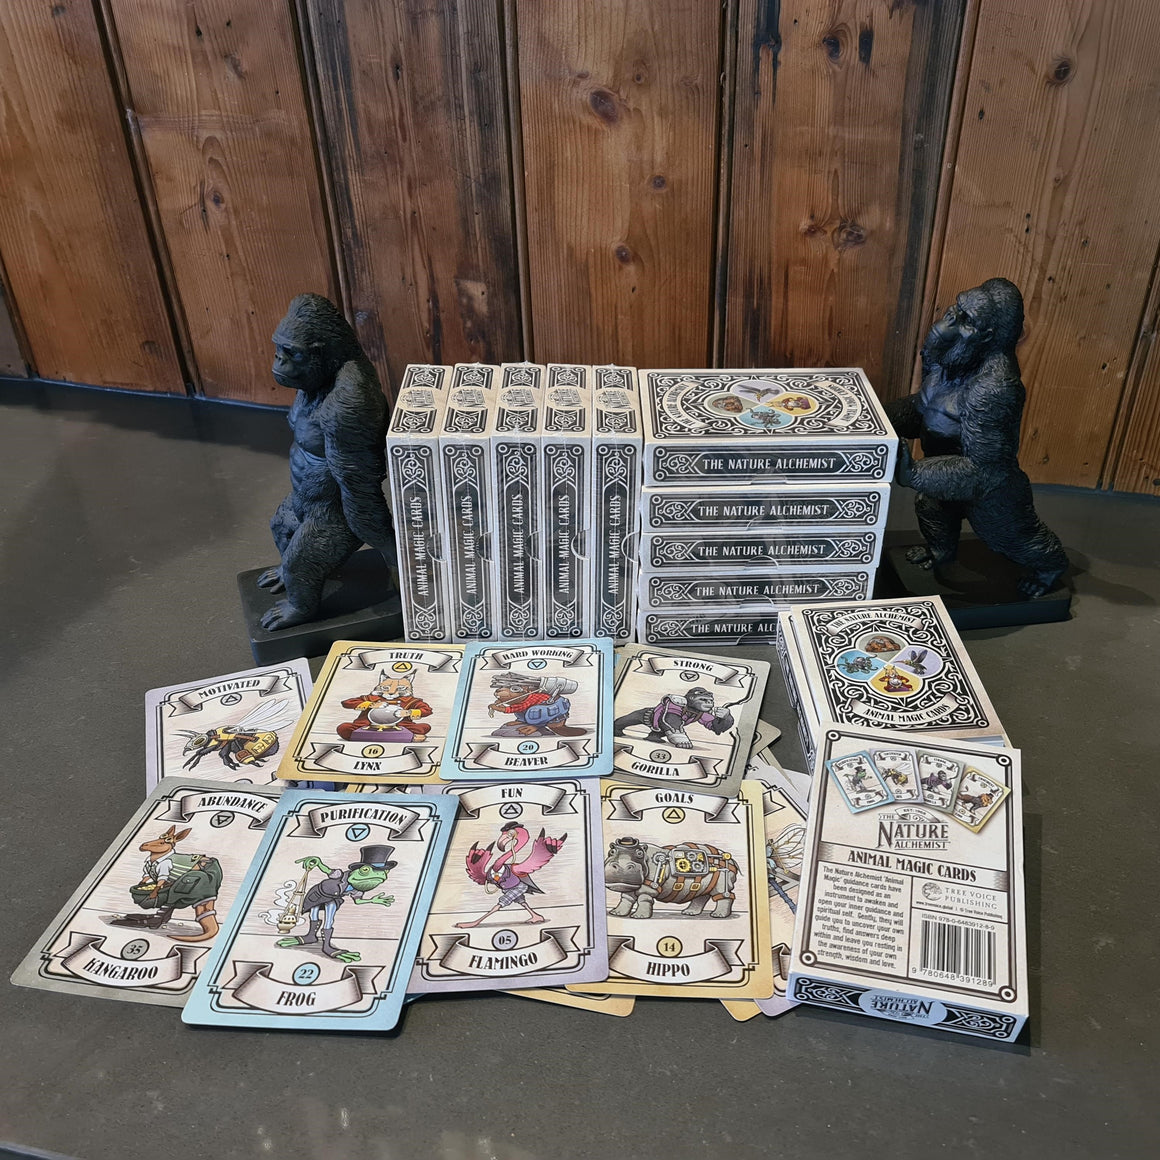 Steampunk 'Animal Magic' Guidance Cards - Pack of 20 (+1 Bonus deck and Gorilla bookends)